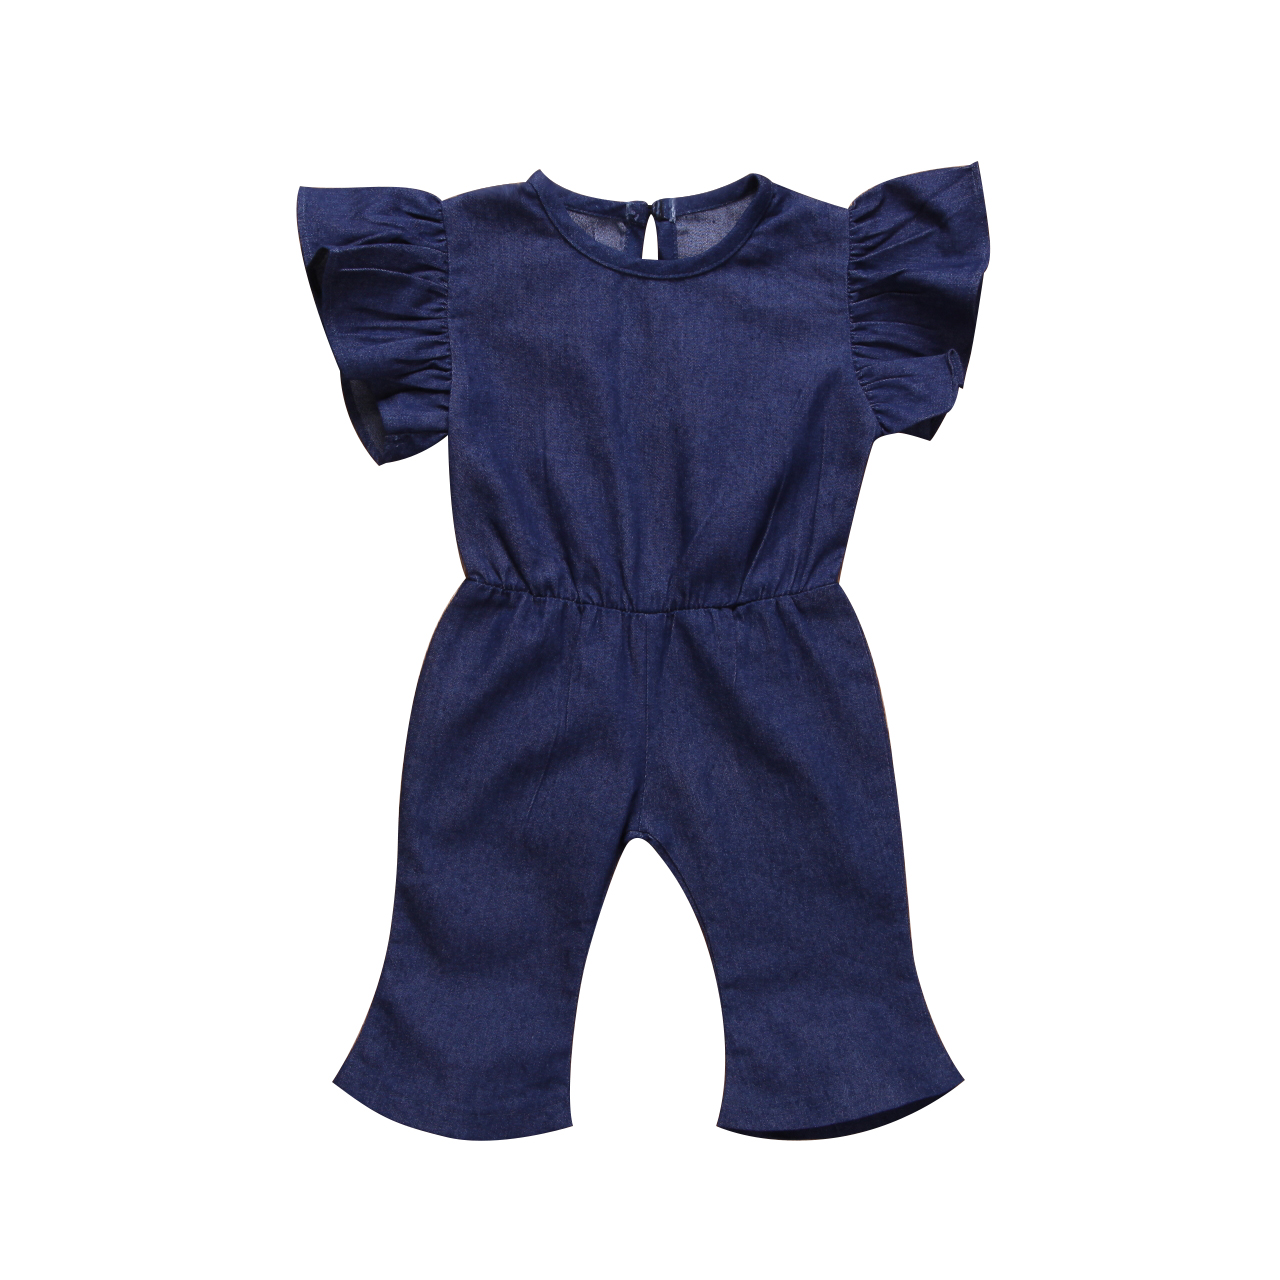 2018 New Toddler Kids Baby Girls Summer Strap Striped Blue Bowknot Romper Jumpsuit Trousers Pants Summer Fashion Outfits Cool In Summer And Warm In Winter Rompers Mother & Kids